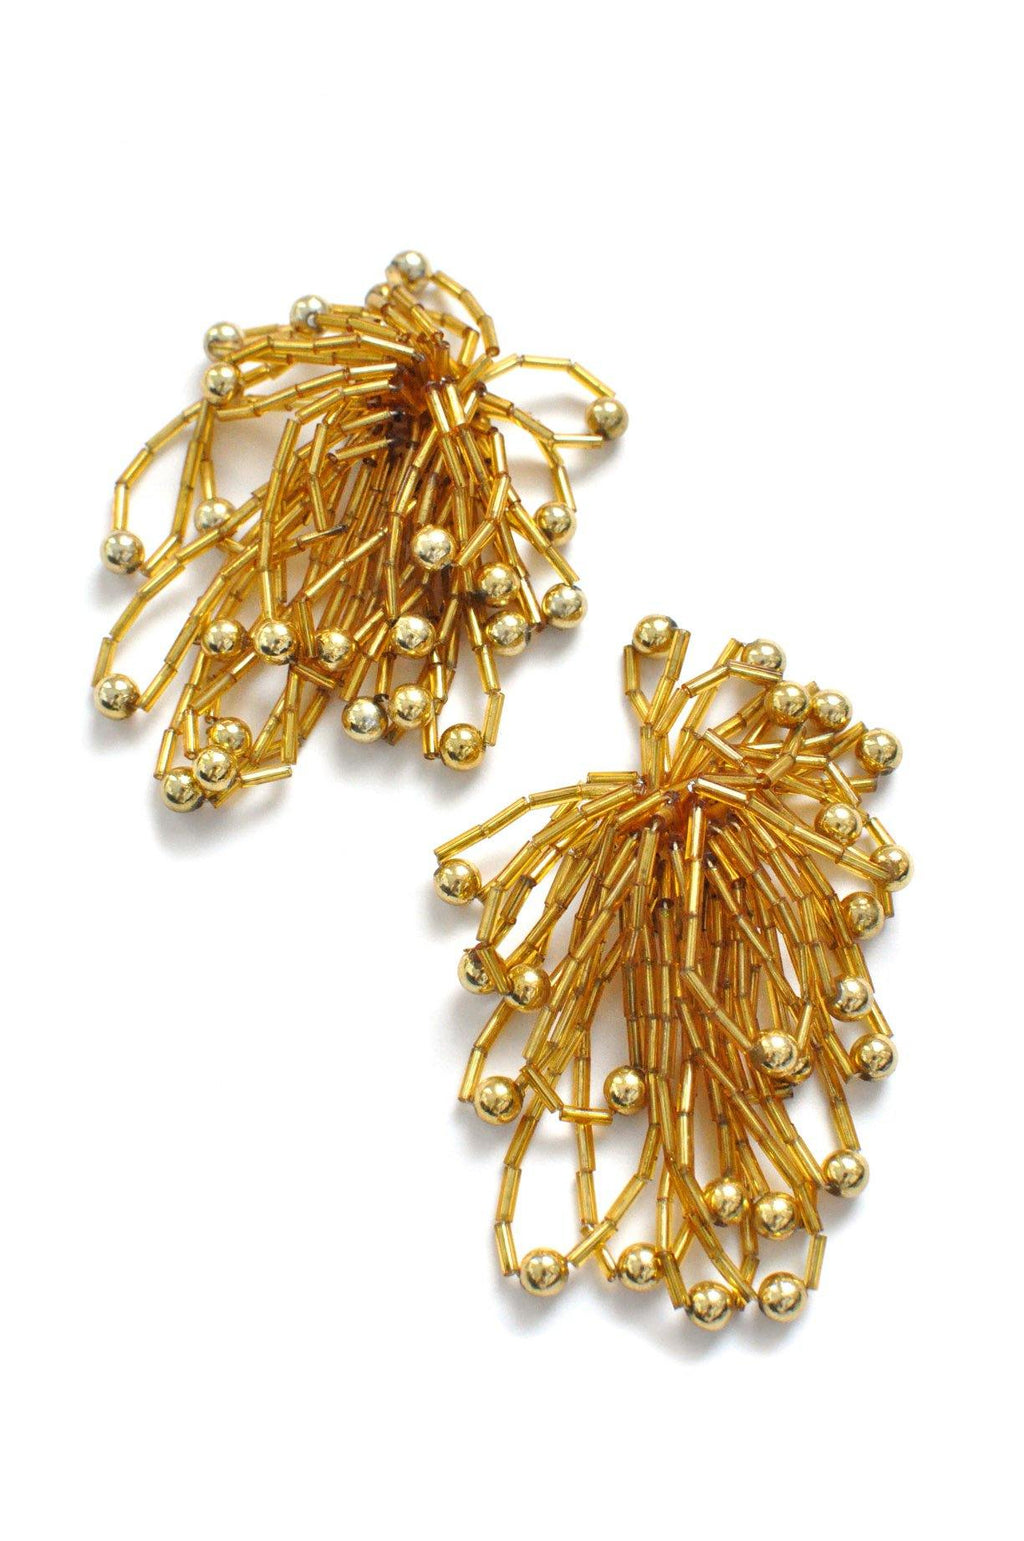 Gold Fringe Clip-on Earrings